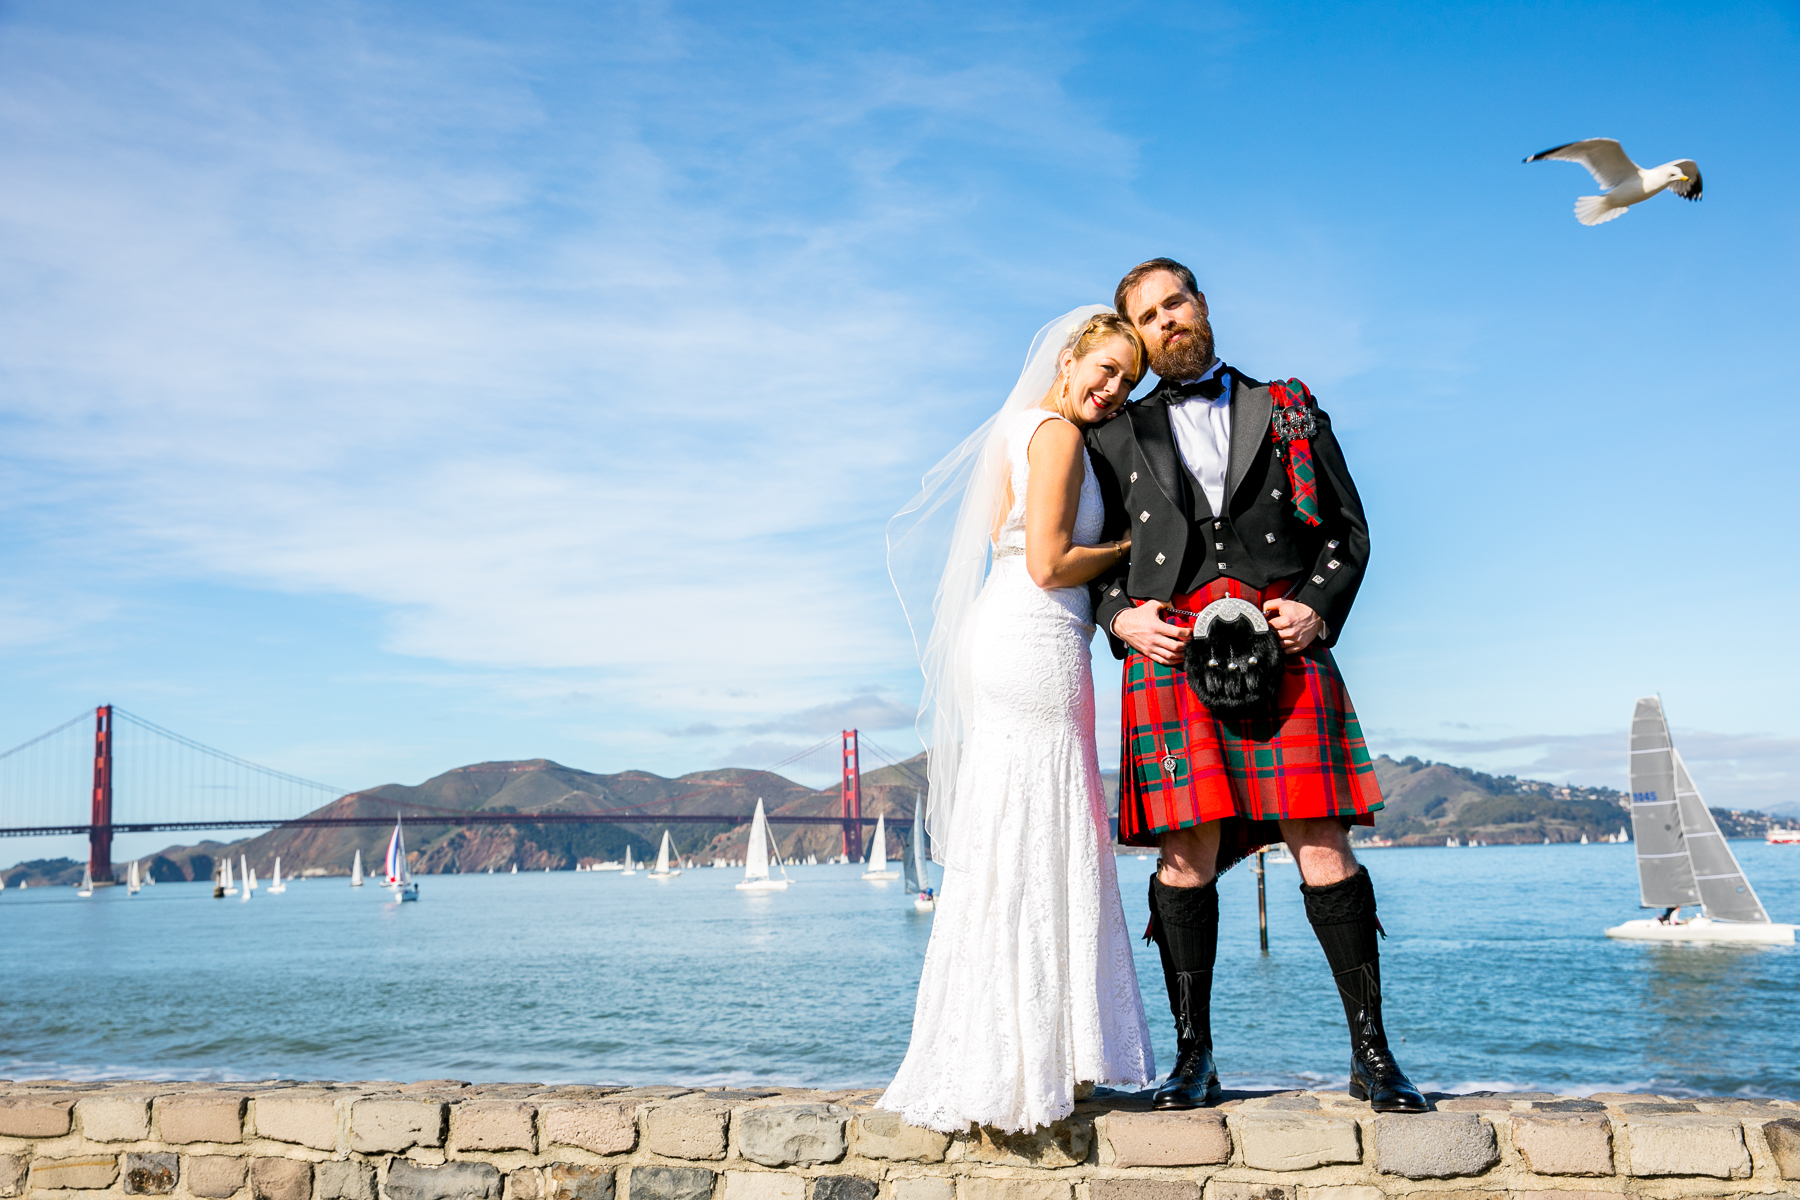 bride and groom portrait in san francisco seagull flies by wedding photographer